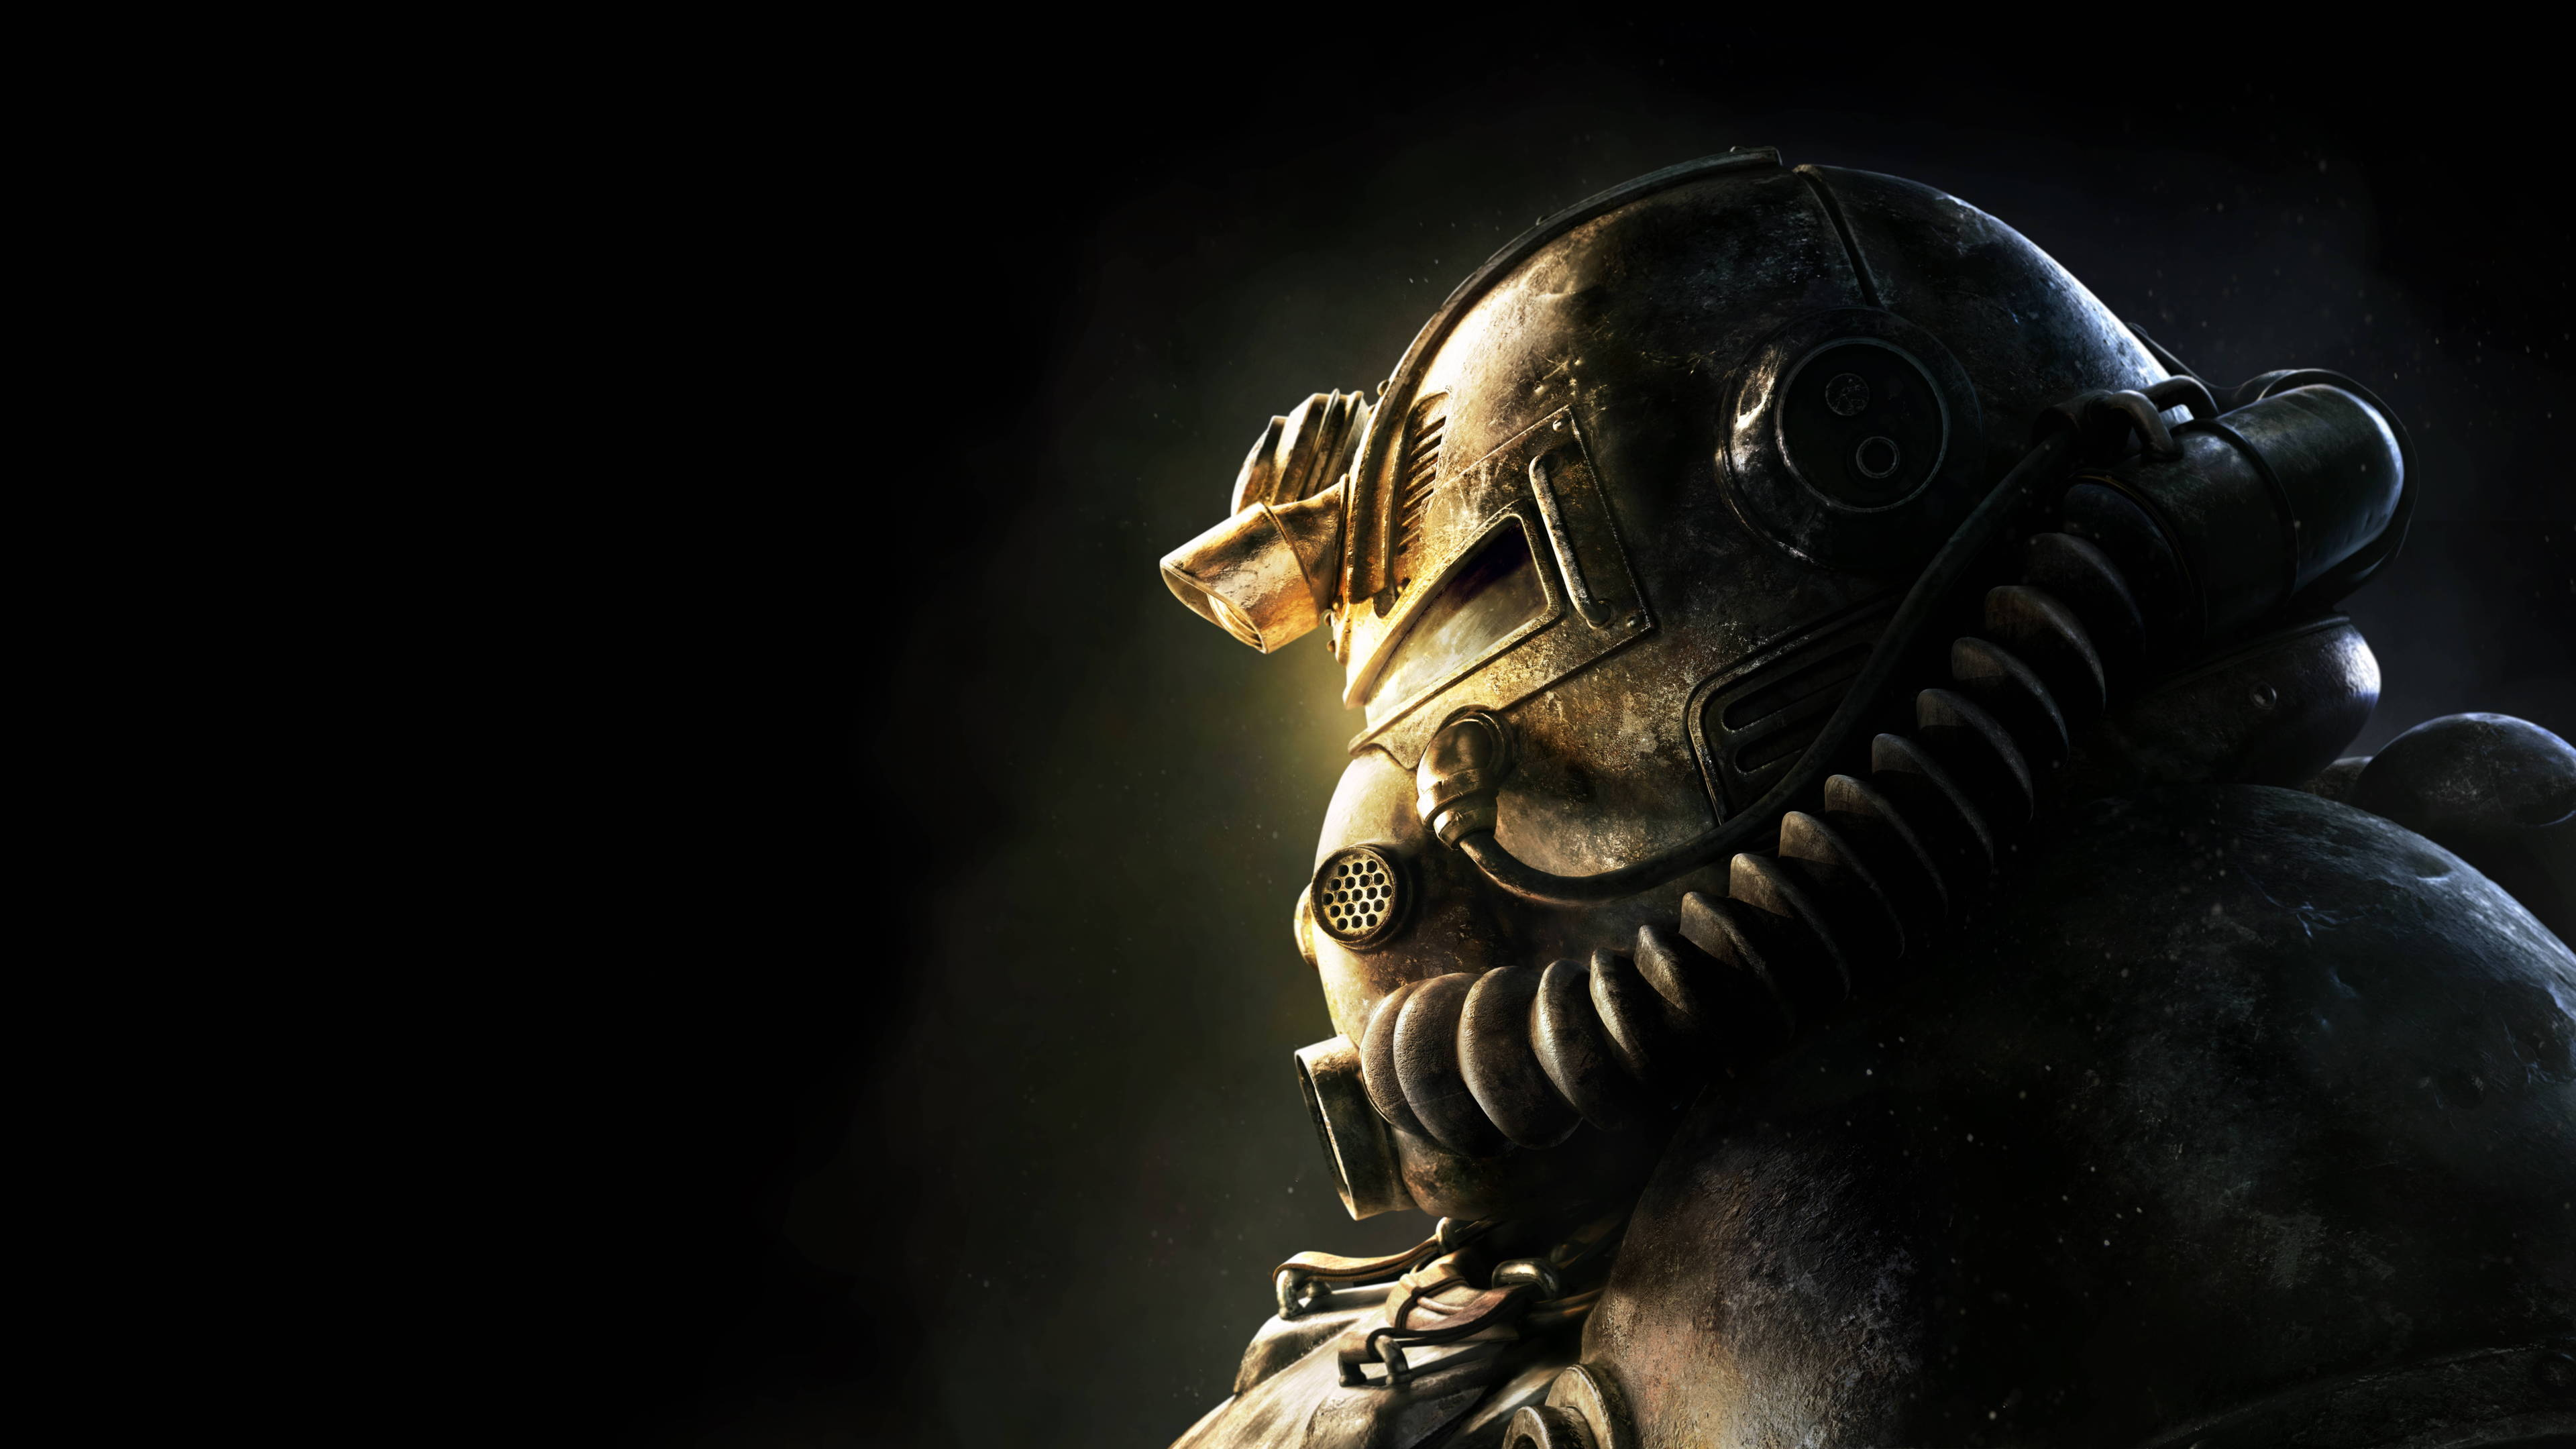 Fallout 76 Images Playscope